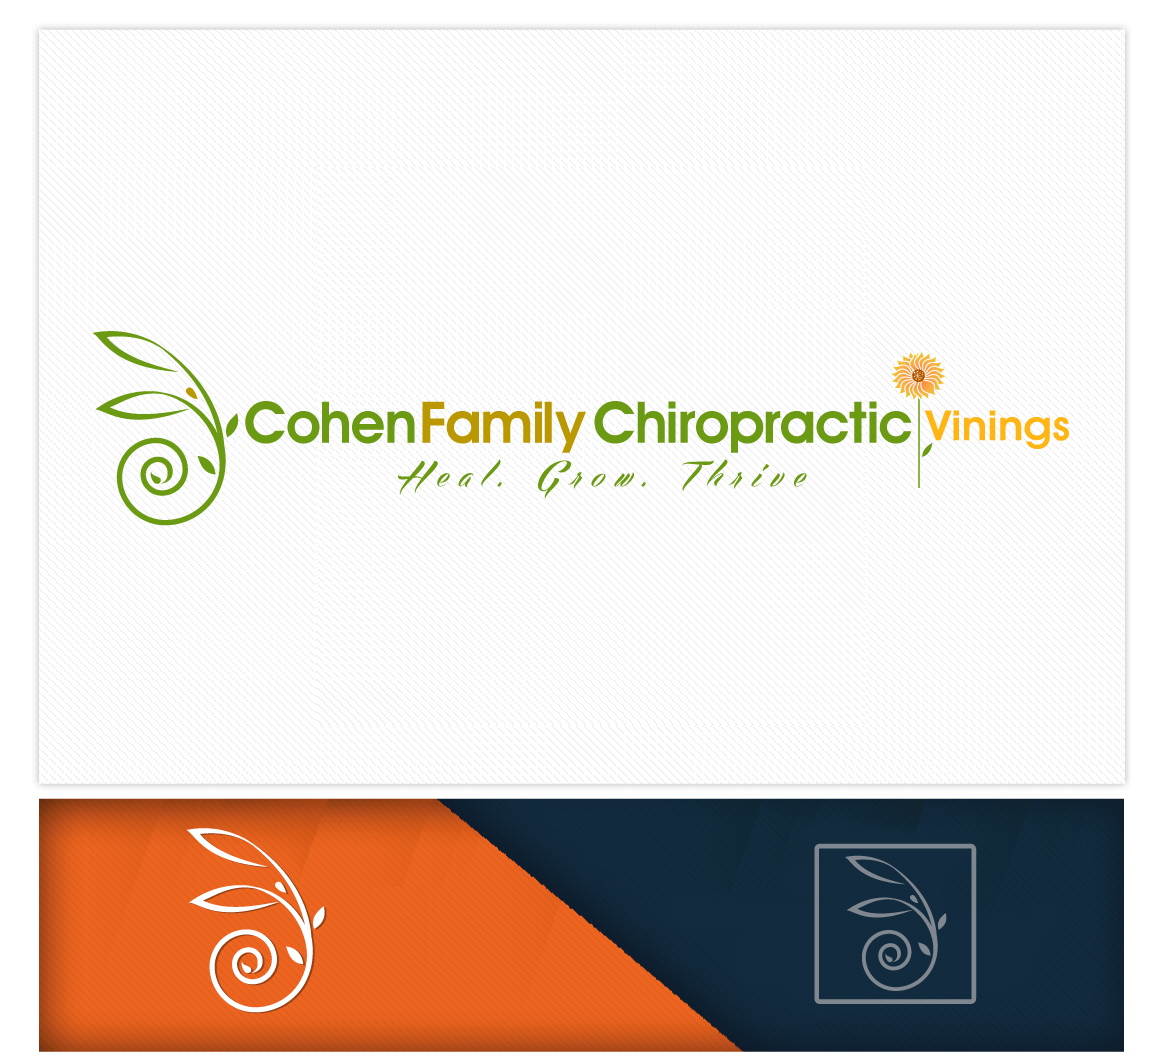 Logo Design by logodesign7434 - Entry No. 64 in the Logo Design Contest Unique Logo Design Wanted for Cohen Family Chiropractic.